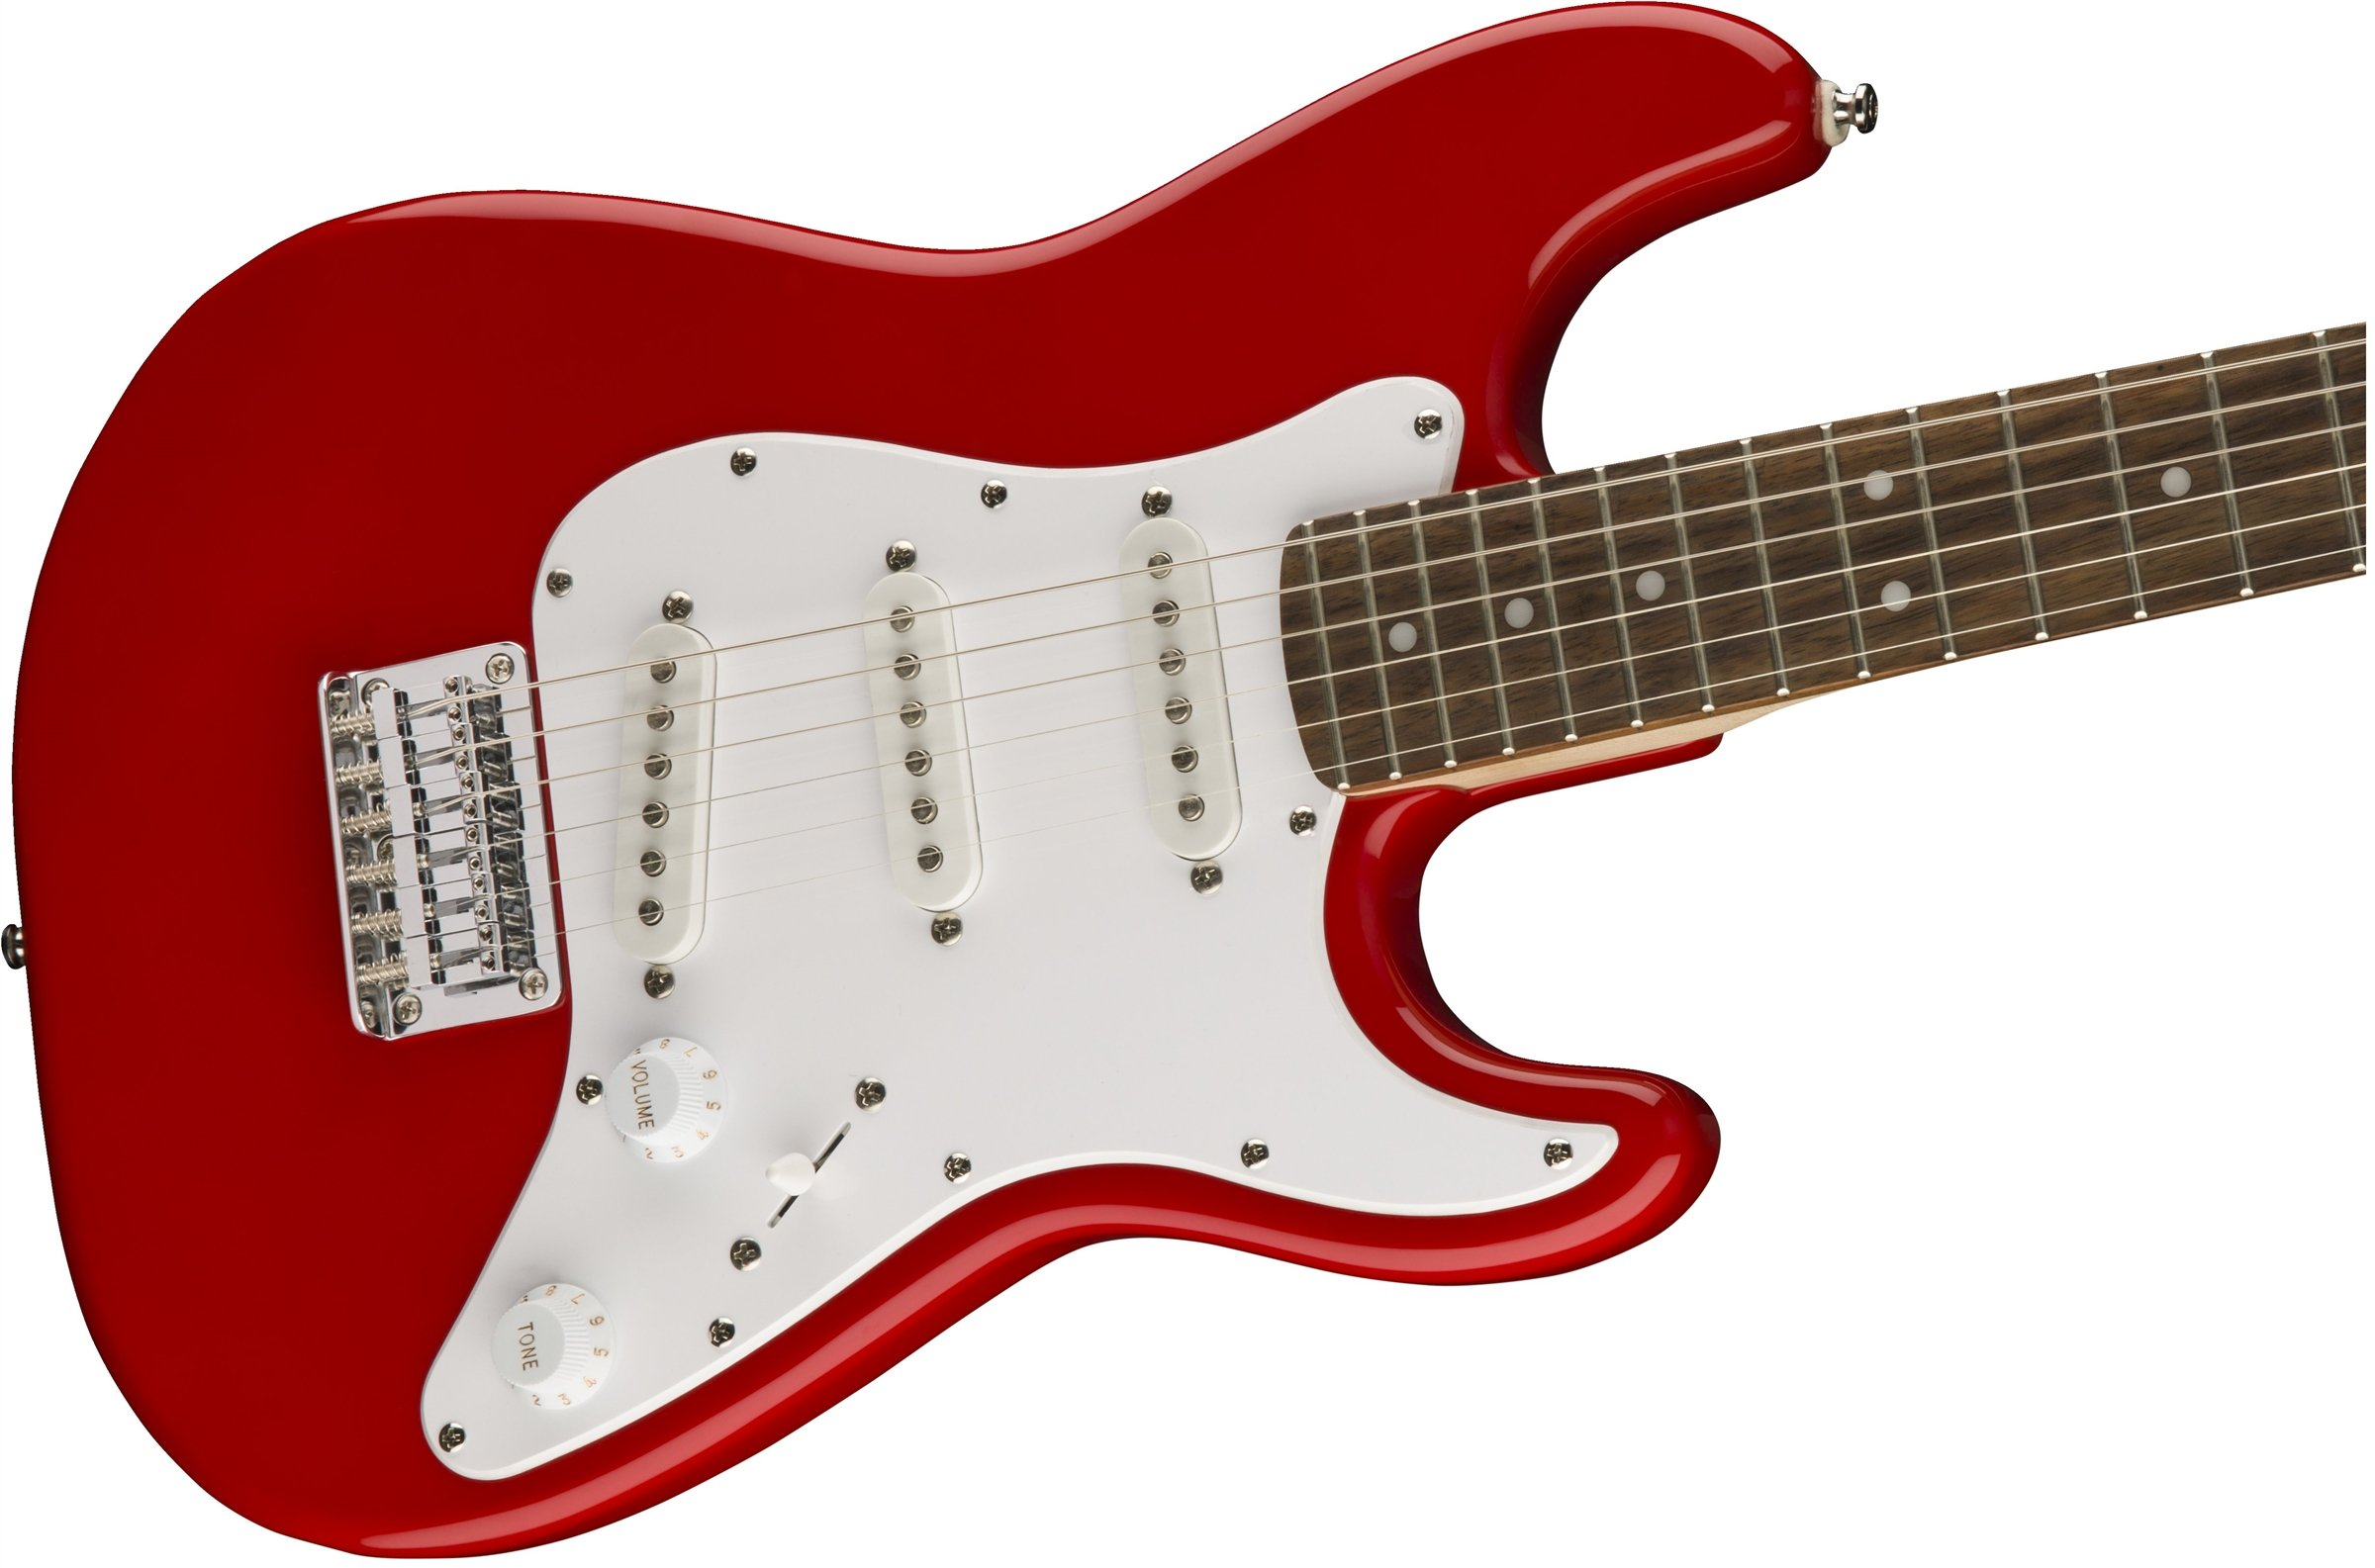 Squier by Fender Mini Stratocaster Beginner Electric Guitar - Indian Laurel Fingerboard - Torino Red by Fender (Image #4)